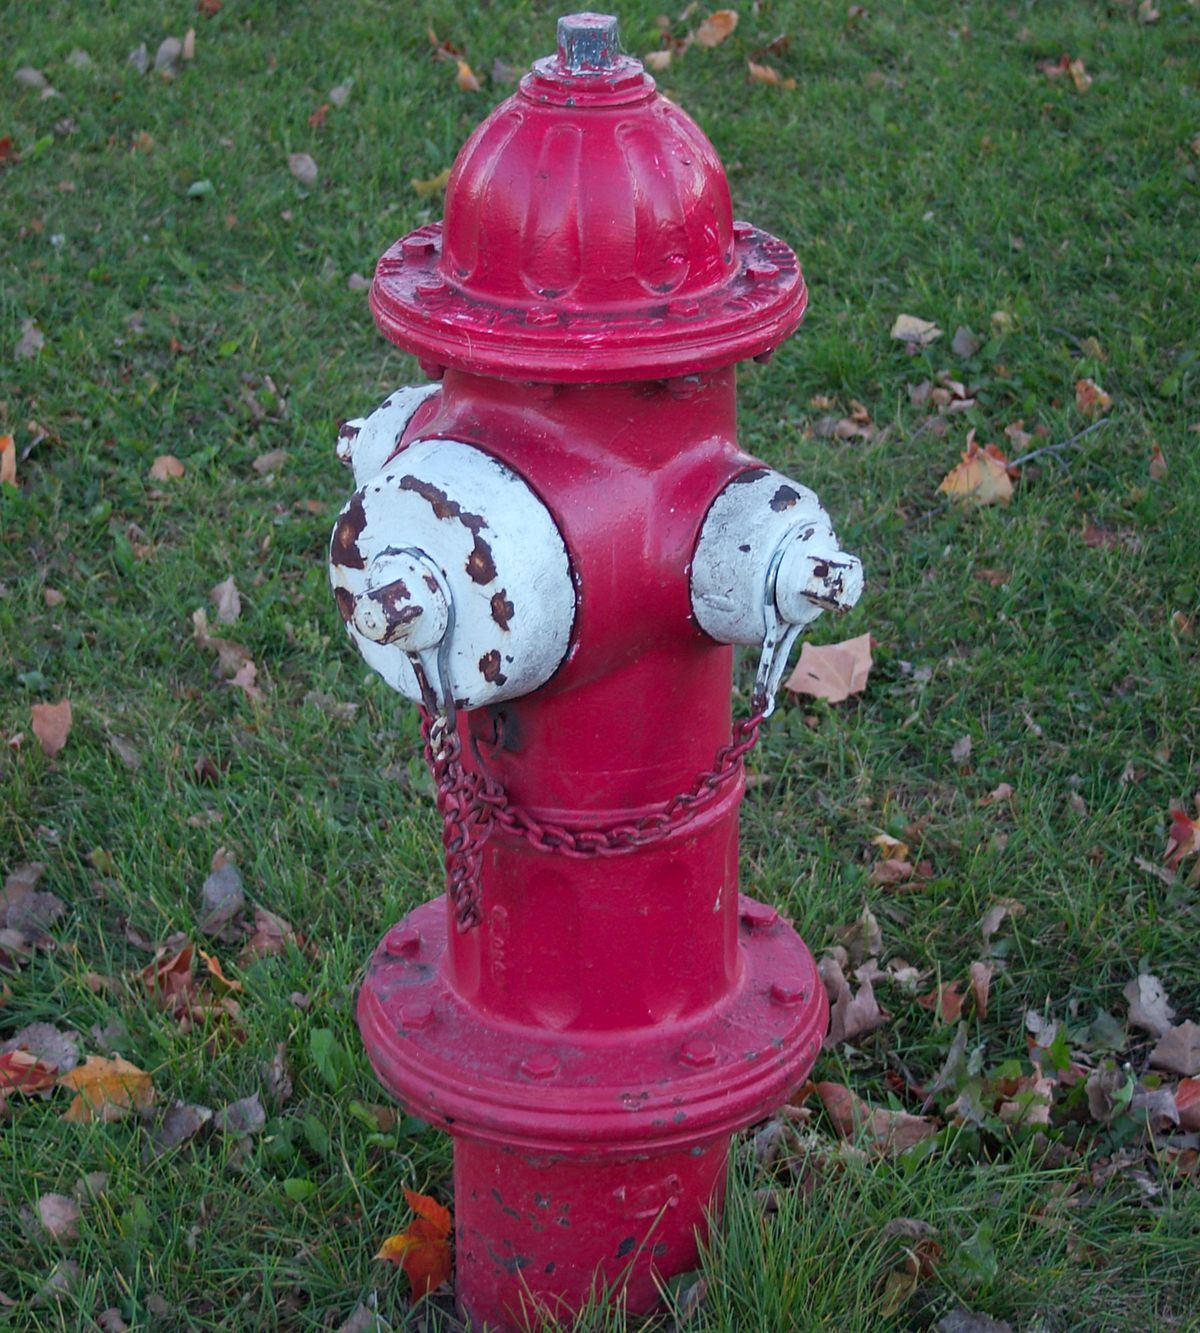 Fire_hydrant_6